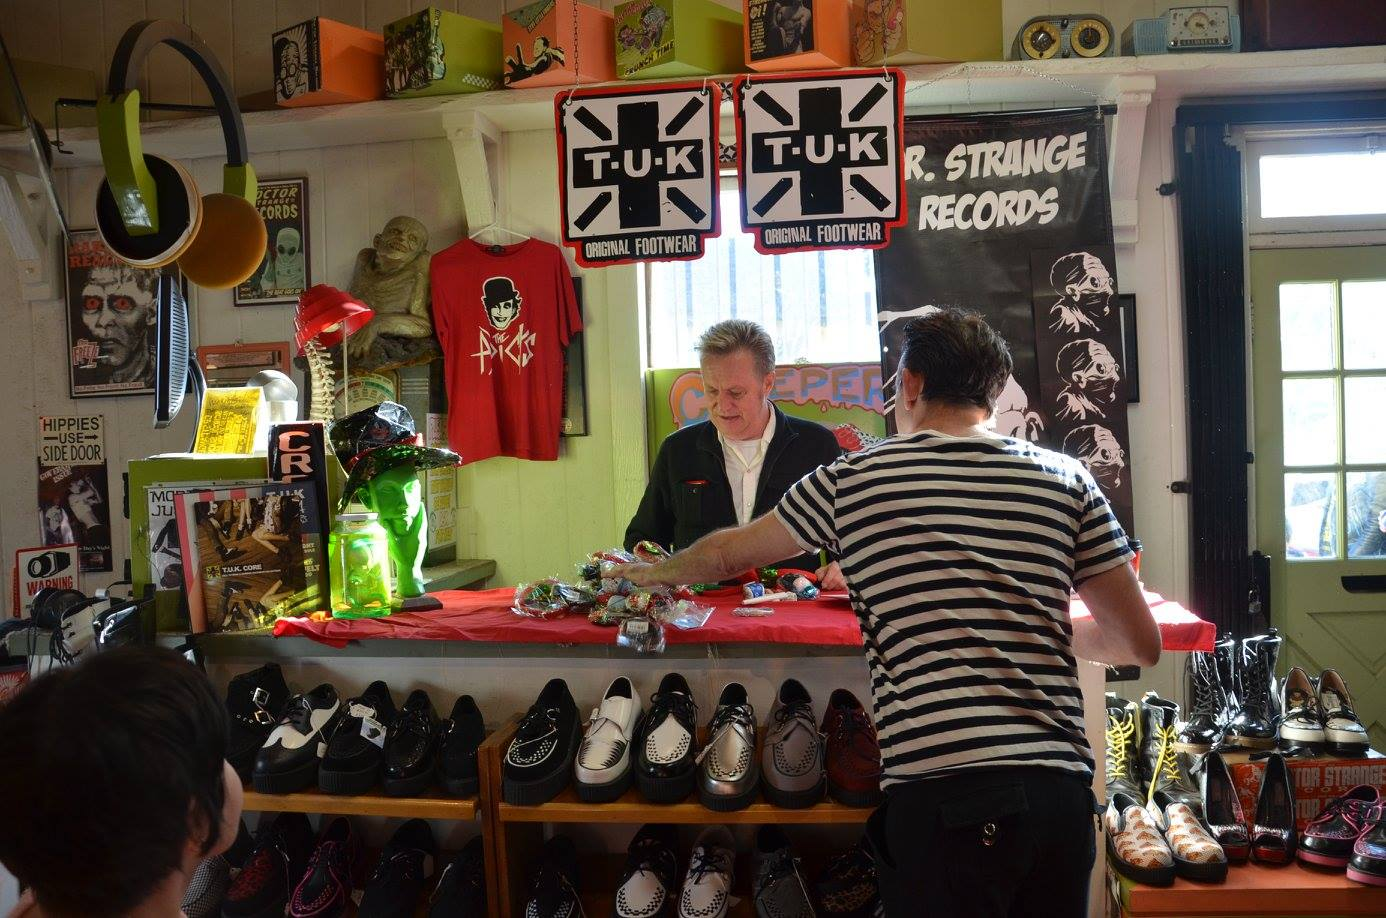 the adicts in-store dr strange records pic -66